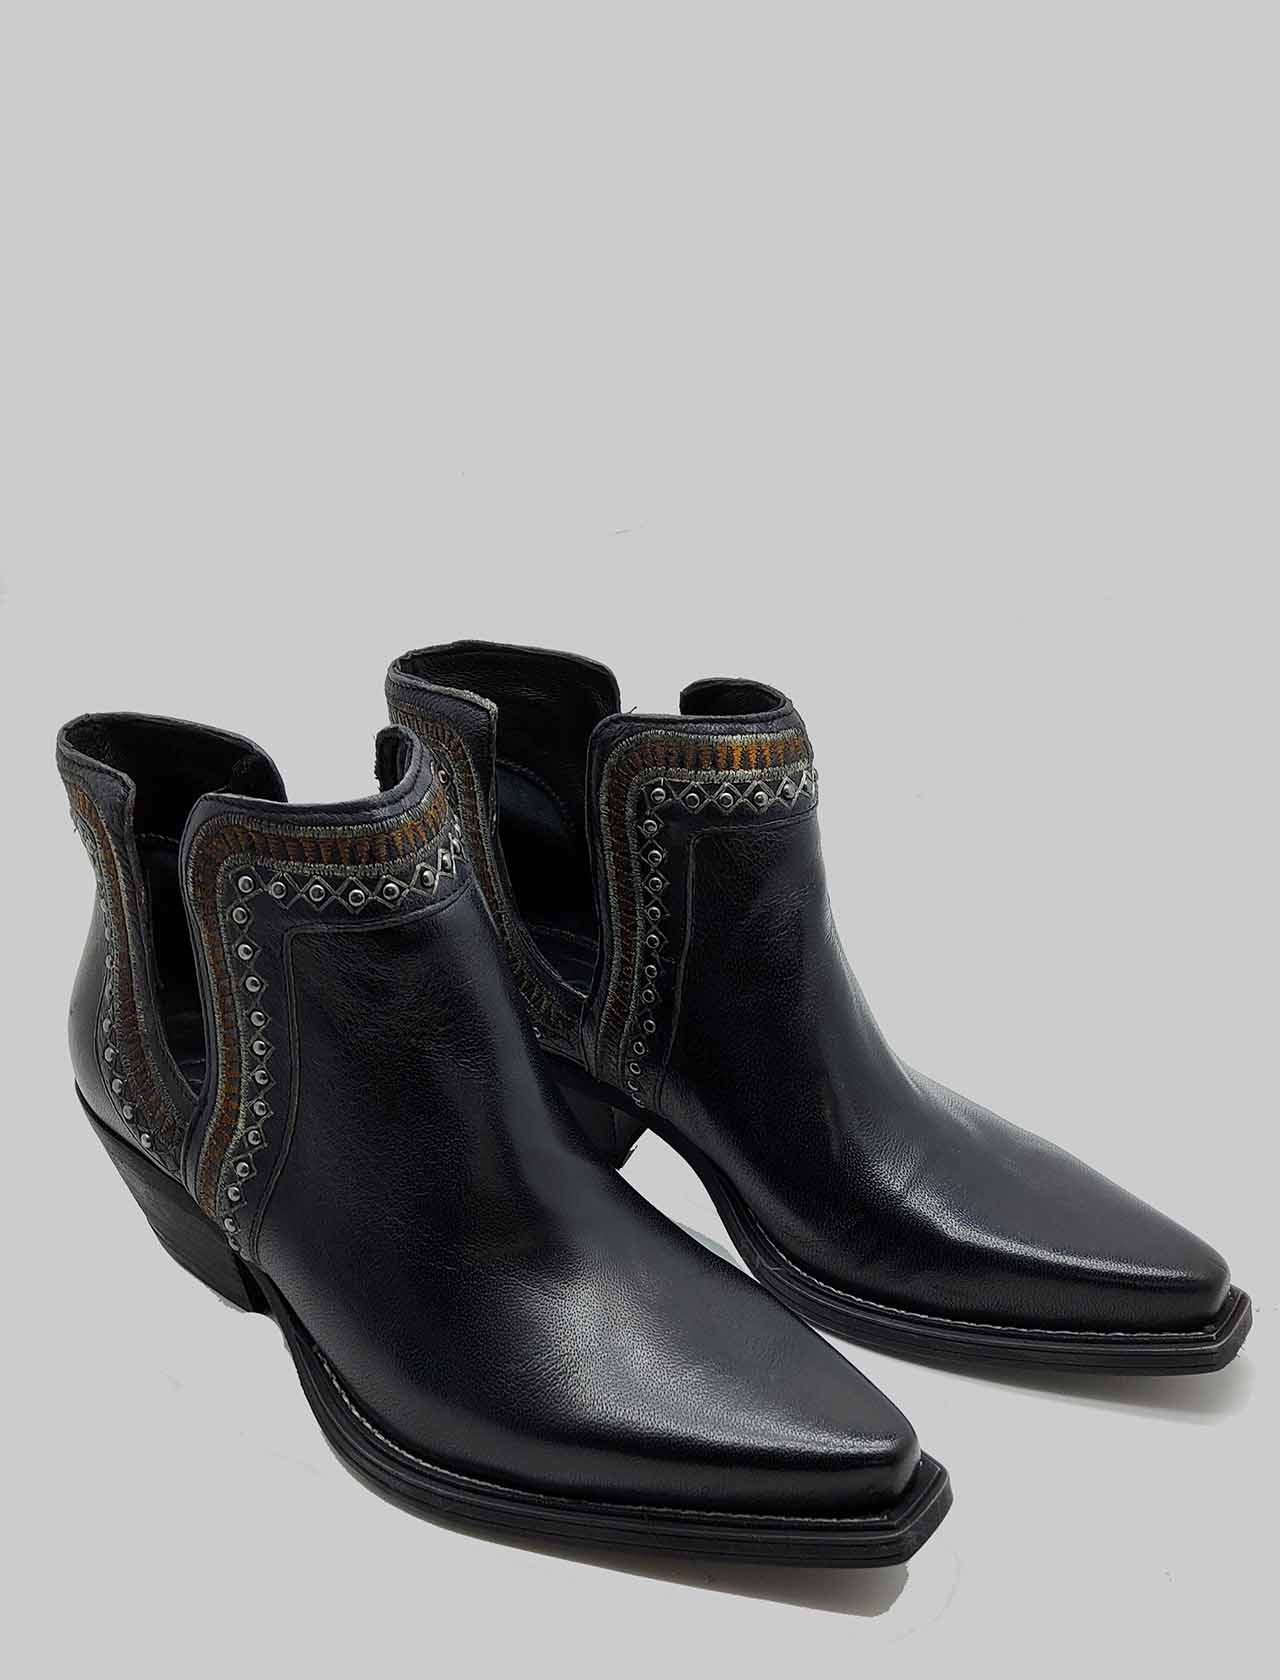 Women's Shoes Texan Ankle Boots In Black Leather With Embroidery Zoe | Ankle Boots | NEZ01001